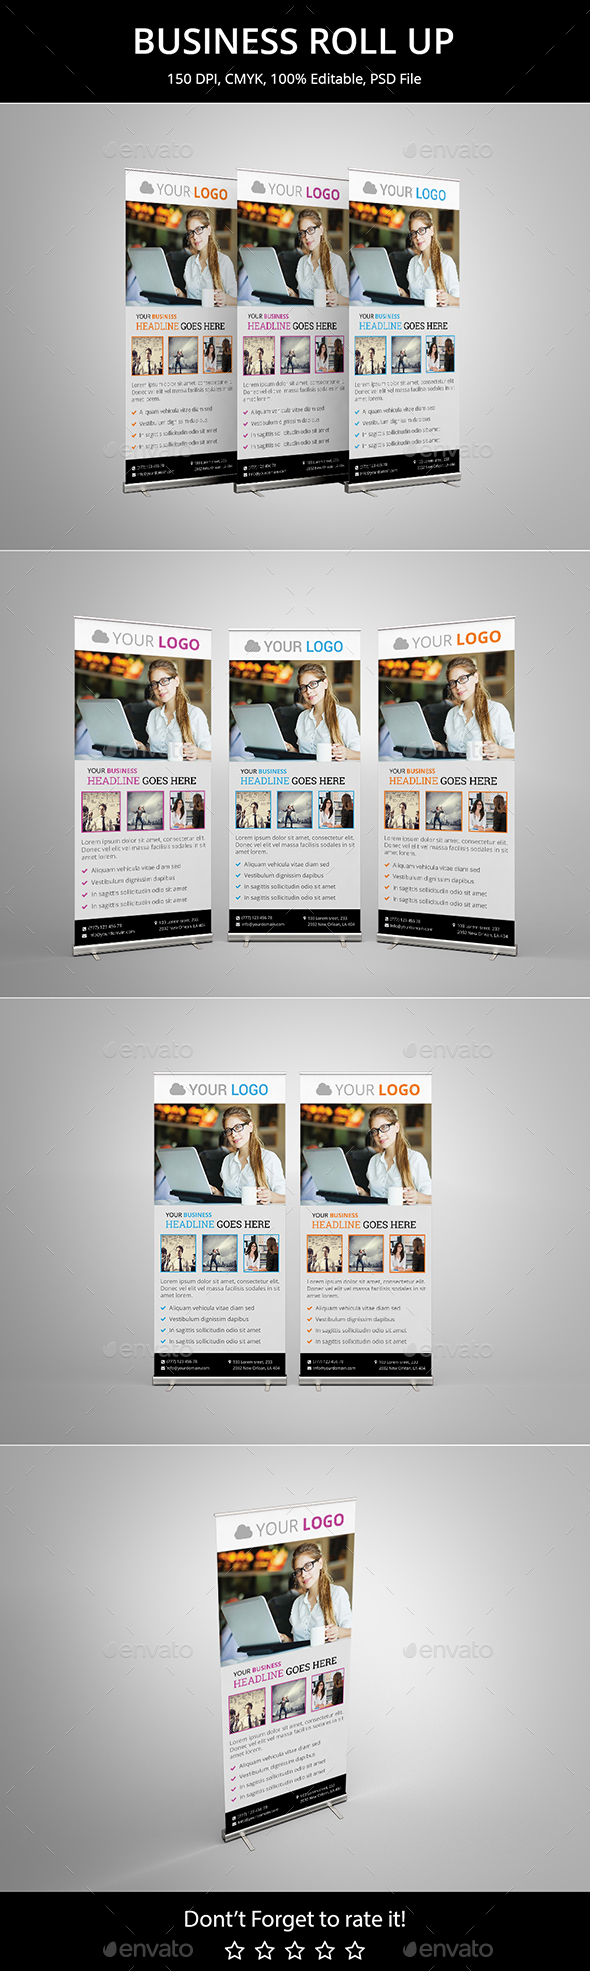 Business Roll up v8 - Signage Print Templates